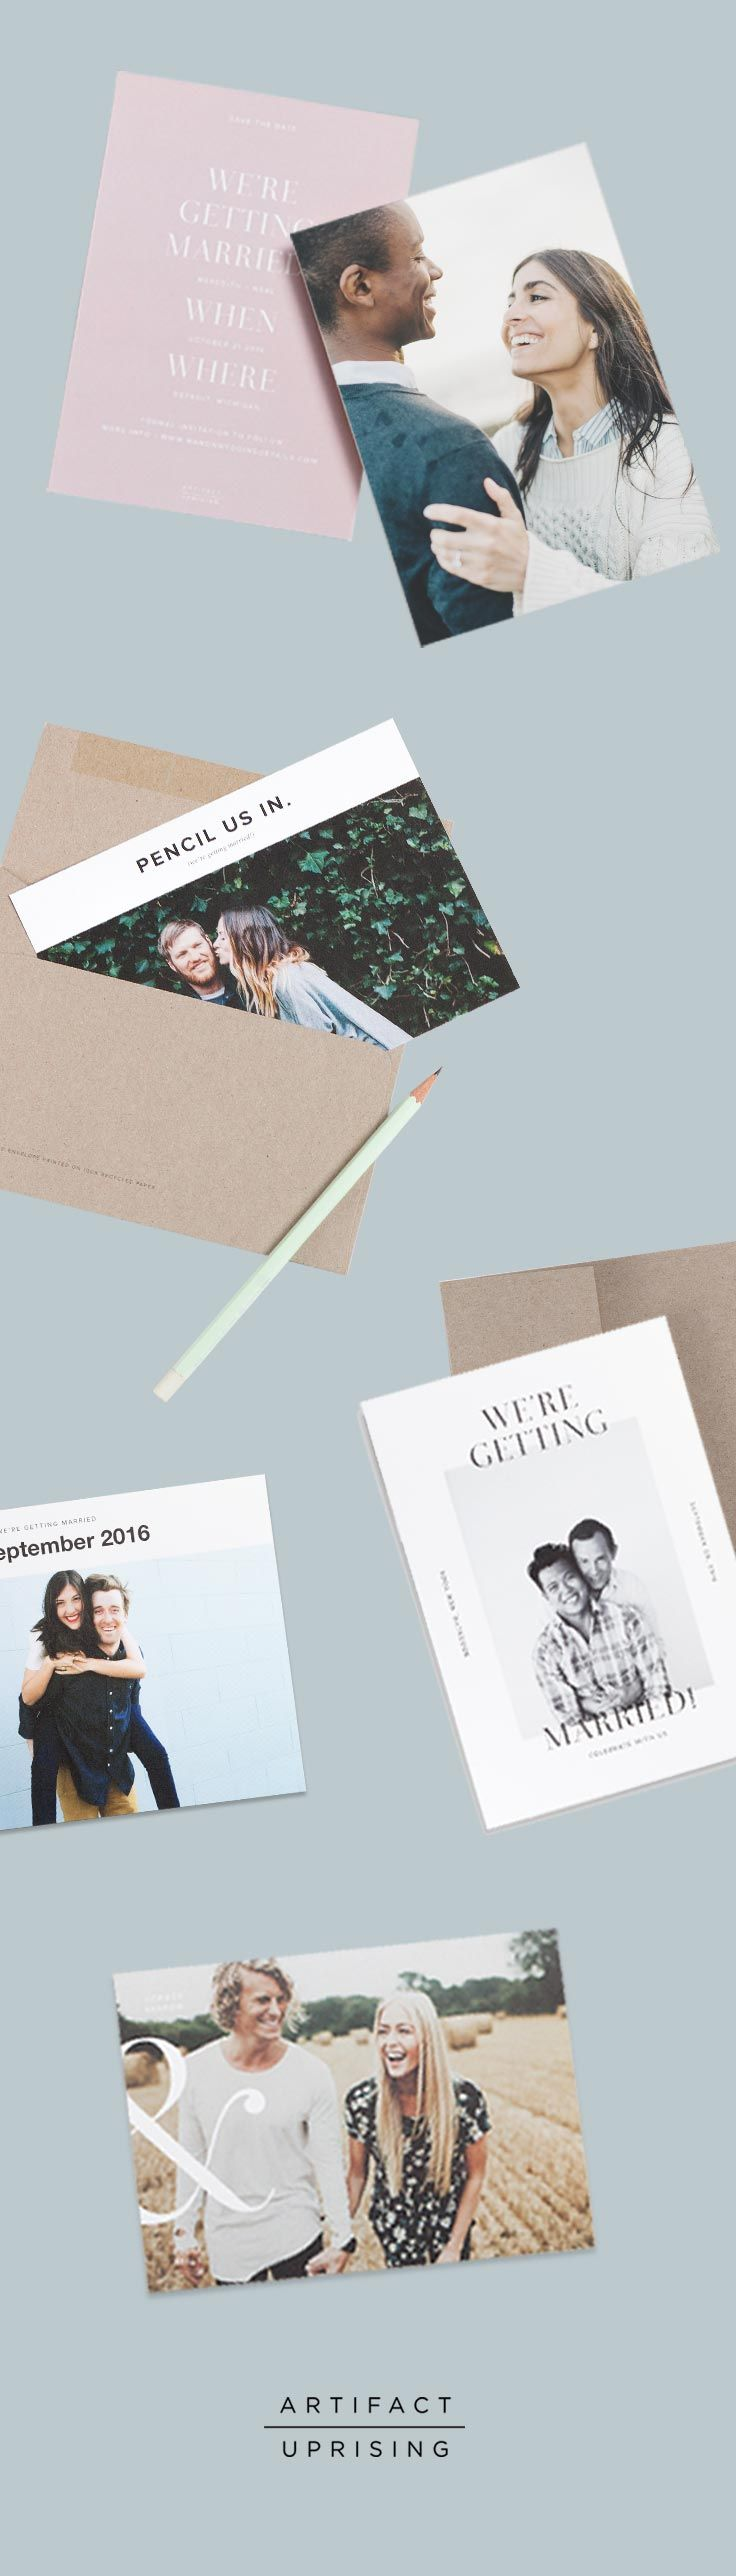 Tying the knot? @artifactuprsng's collection of Save the Dates offers classic and modern designs that can be customized on both sides with your favorite photo and the details of your wedding day. All Save the Dates are printed on premium quality 100% recycled paper.